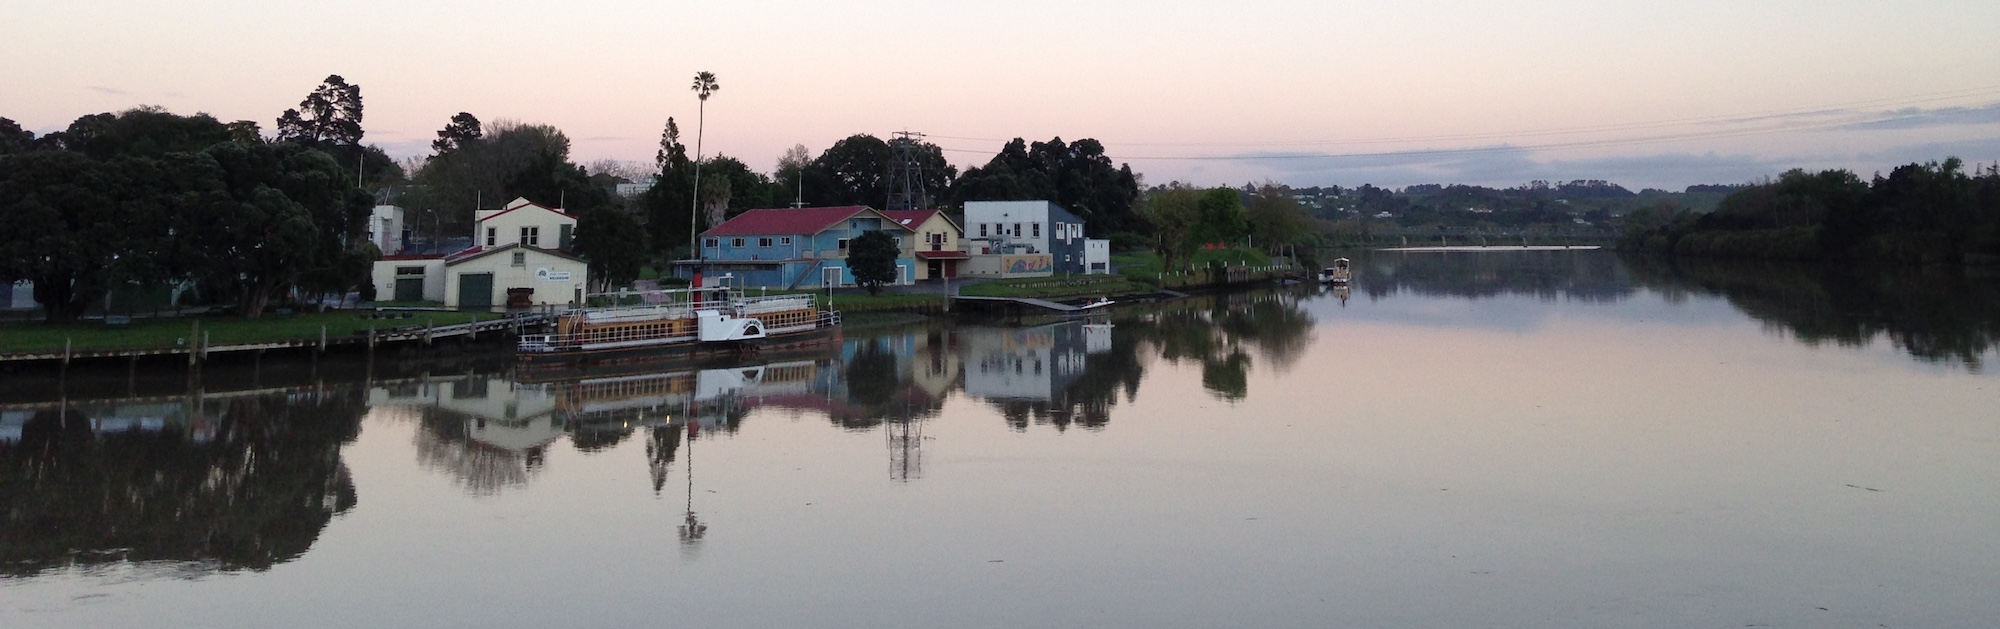 Whanganui-river-accommodation-browns-boutique-bnb